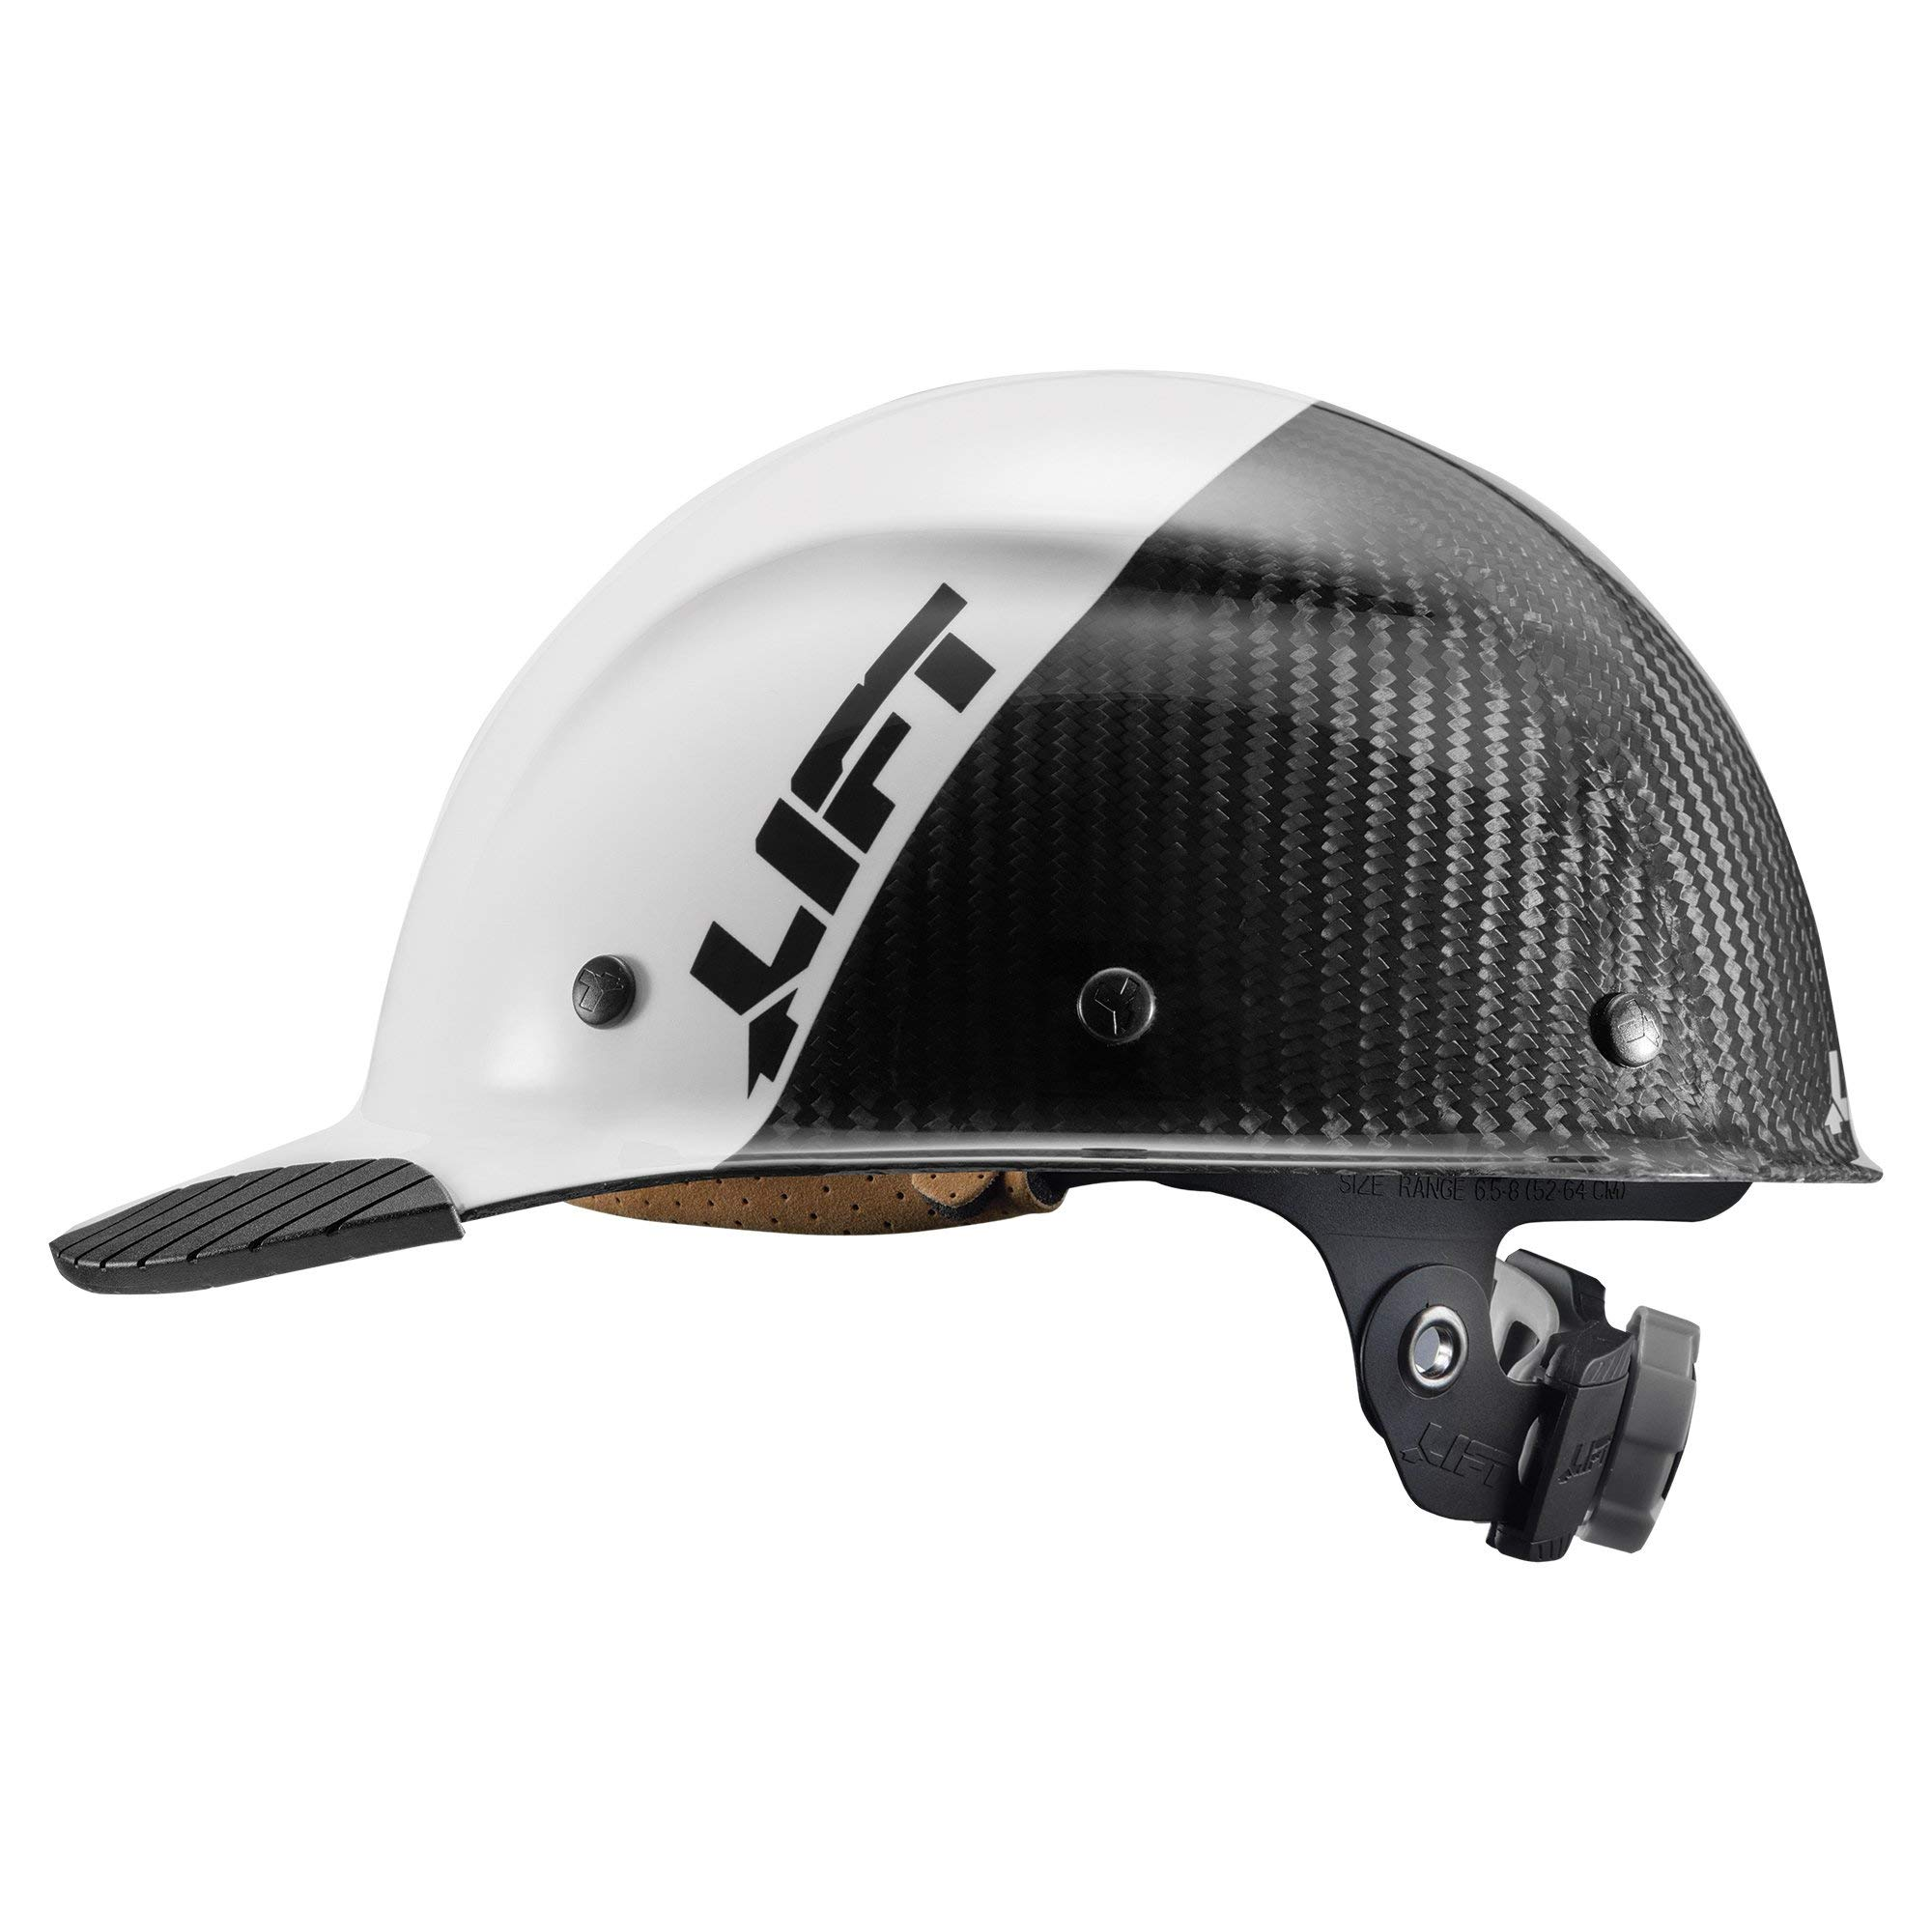 LIFT Safety DAX Fifty 50 Carbon Fiber Cap Style Hardhat ANSI Compliant 6 Point Upgraded Suspension Triple Reinforced Crown, Class C (White - Carbon Fiber) by LIFT Safety